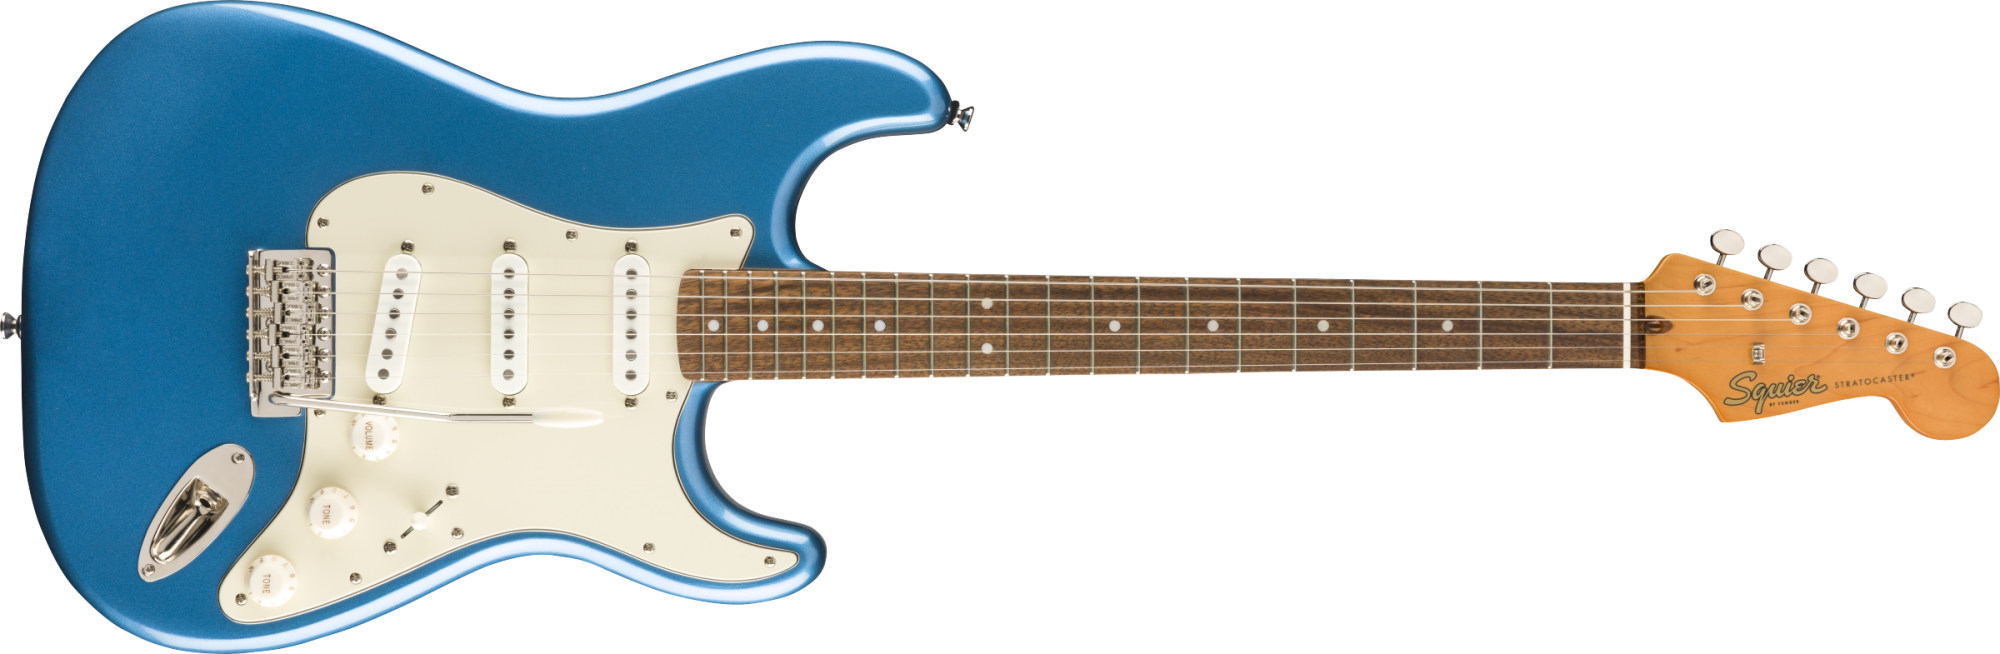 Squier Classic Vibe 60s Stratocaster